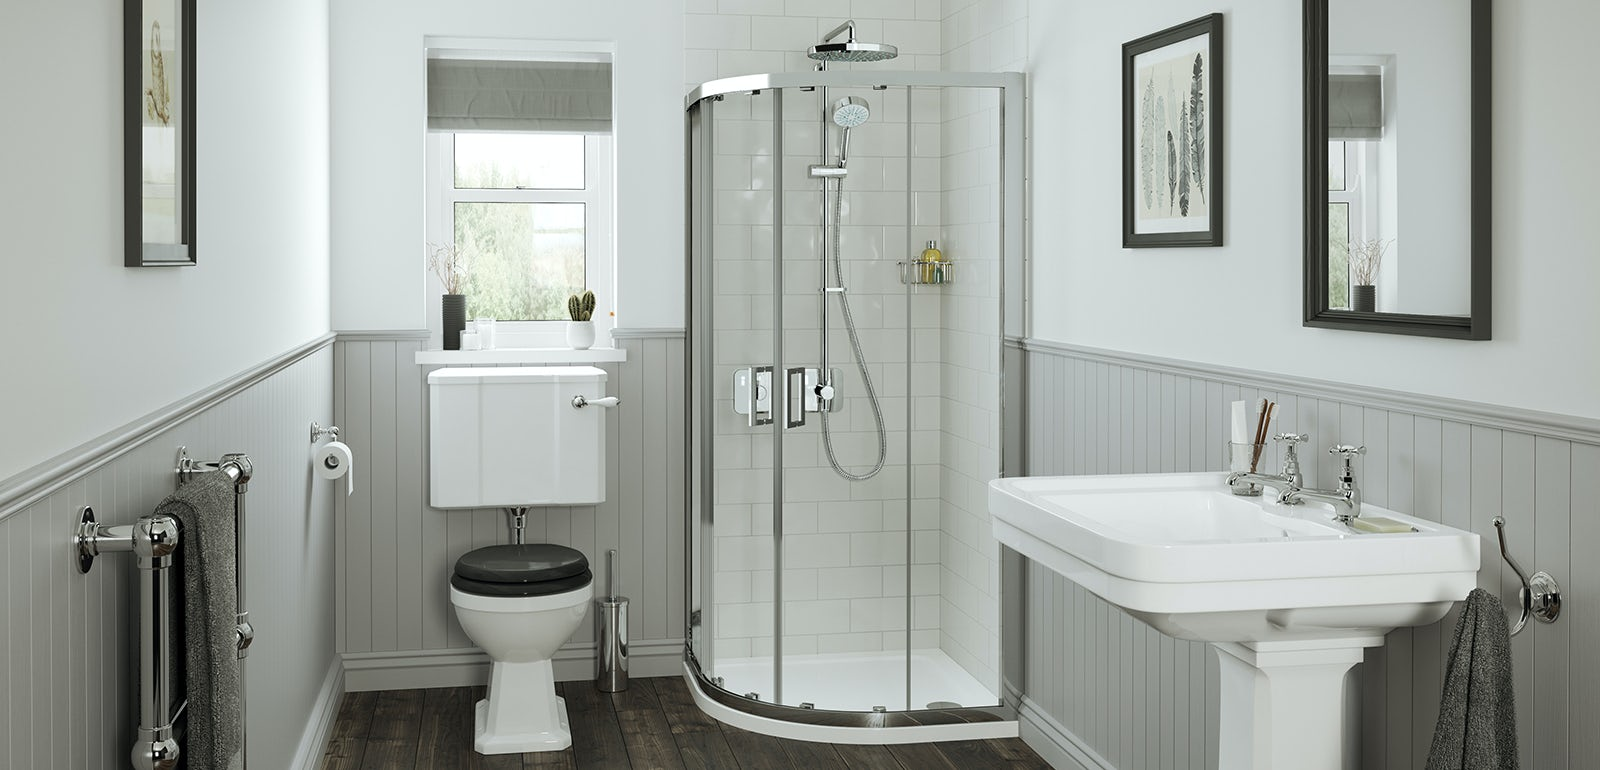 Small bathroom solutions from mira showers for Compact bathroom solutions